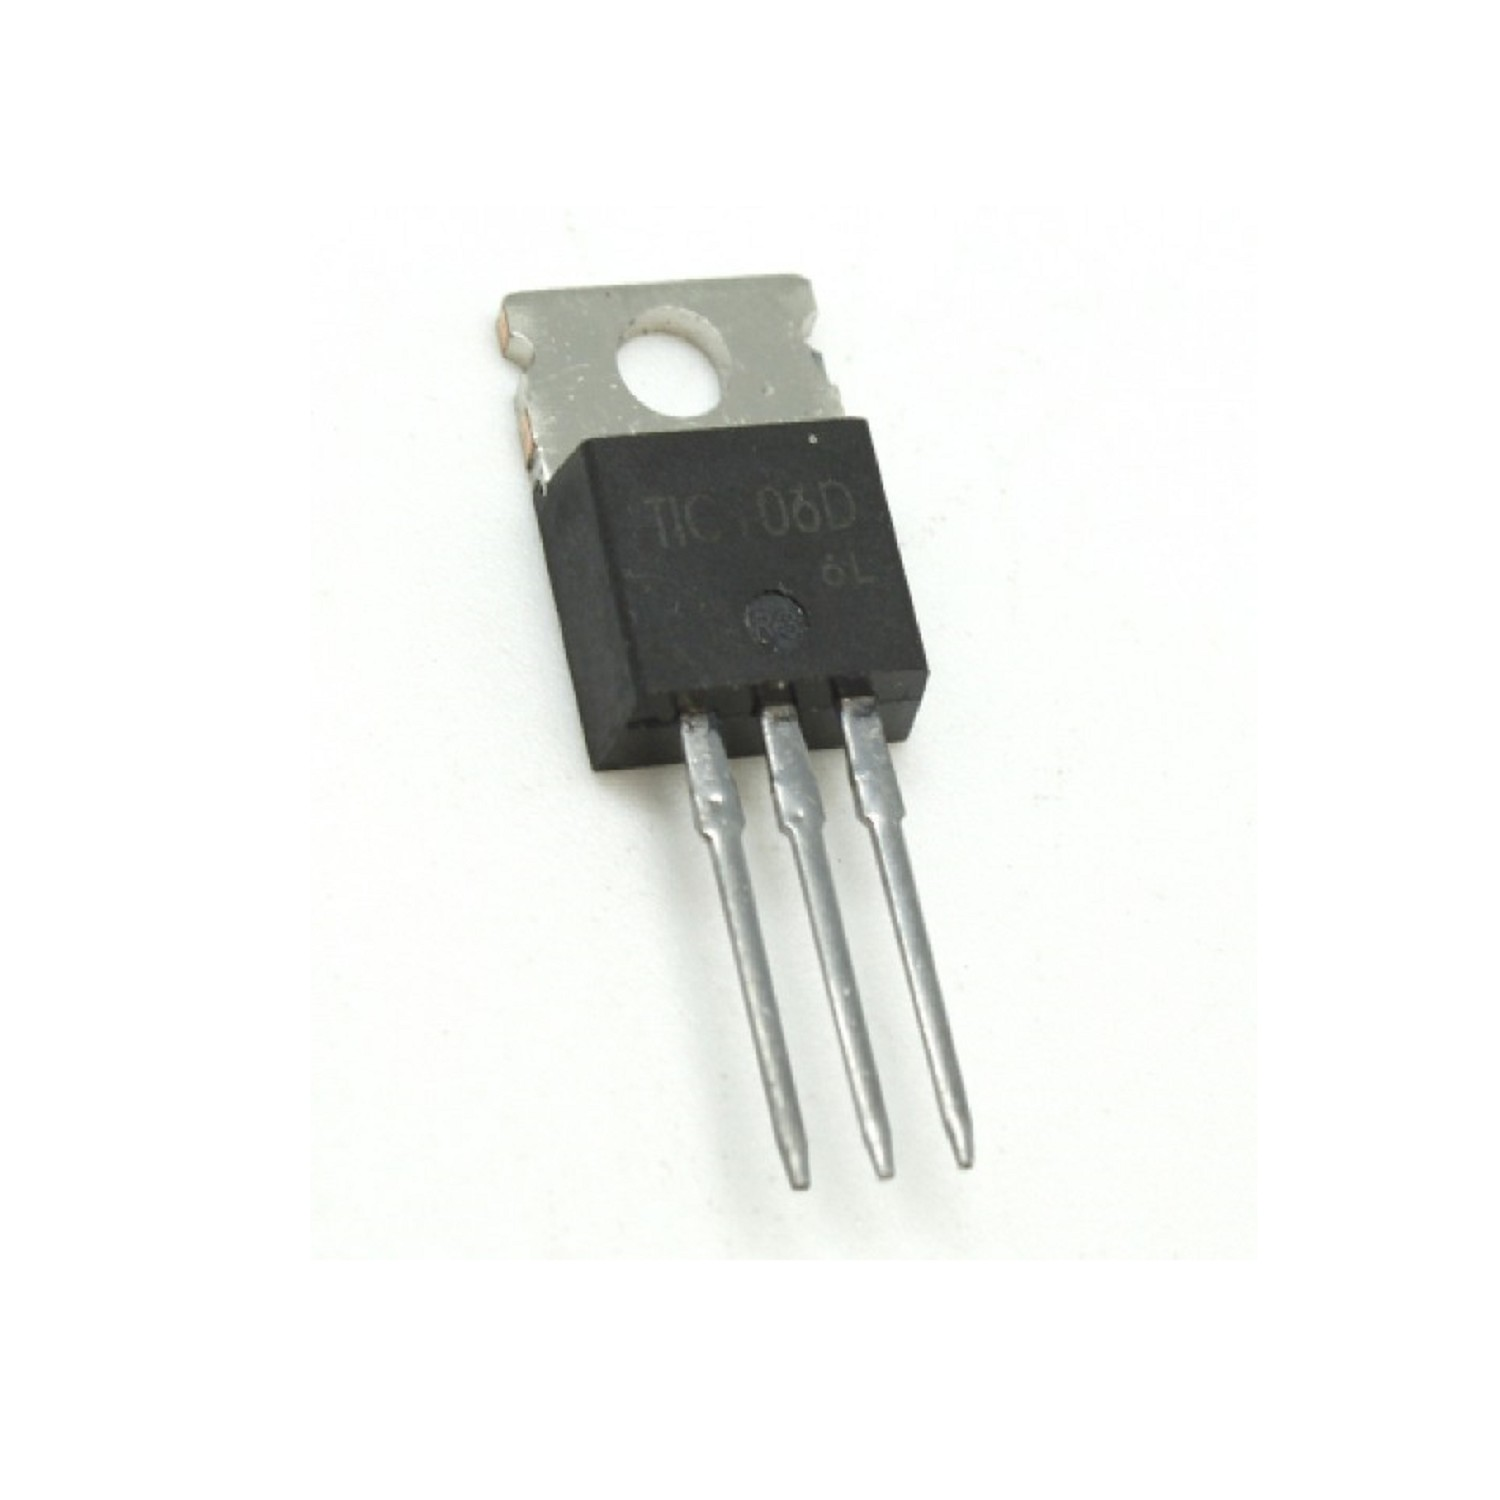 TIRISTORES TIC106D SILICON CONTROLLED RECTIFIERS